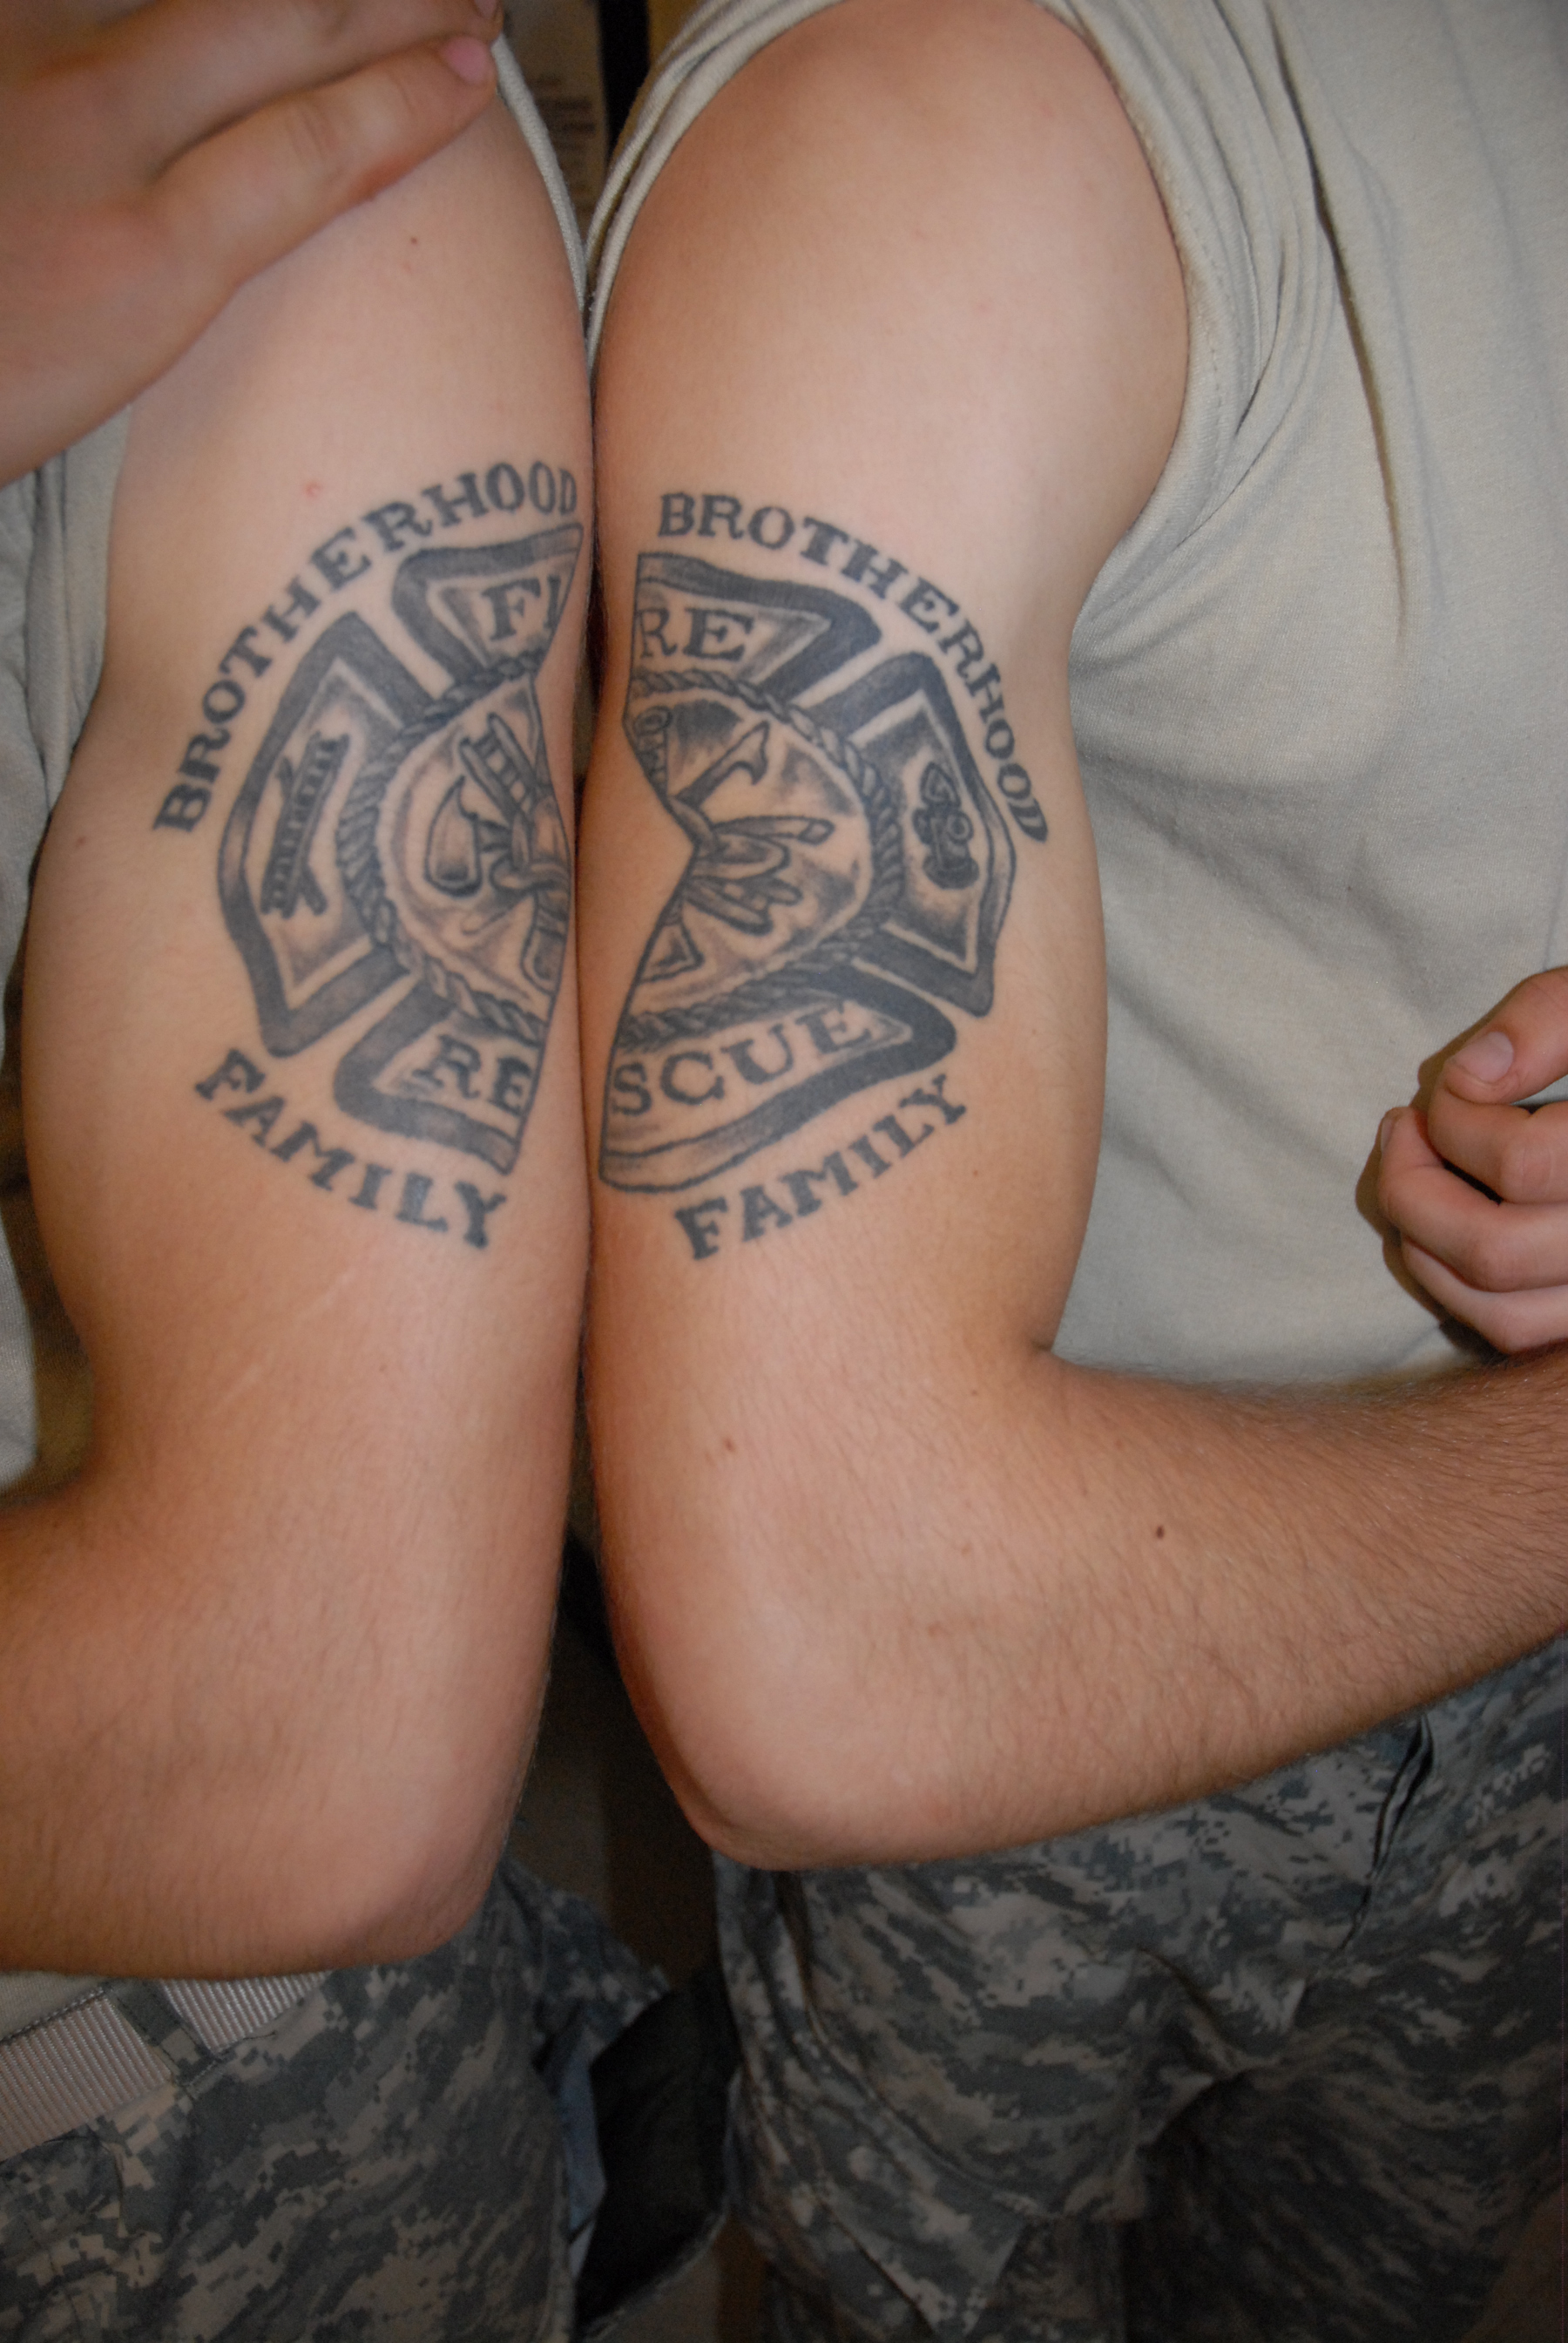 Firefighter tattoos designs and ideas - Displaying 14 Gt Images For Fighter Tattoo On Wrist